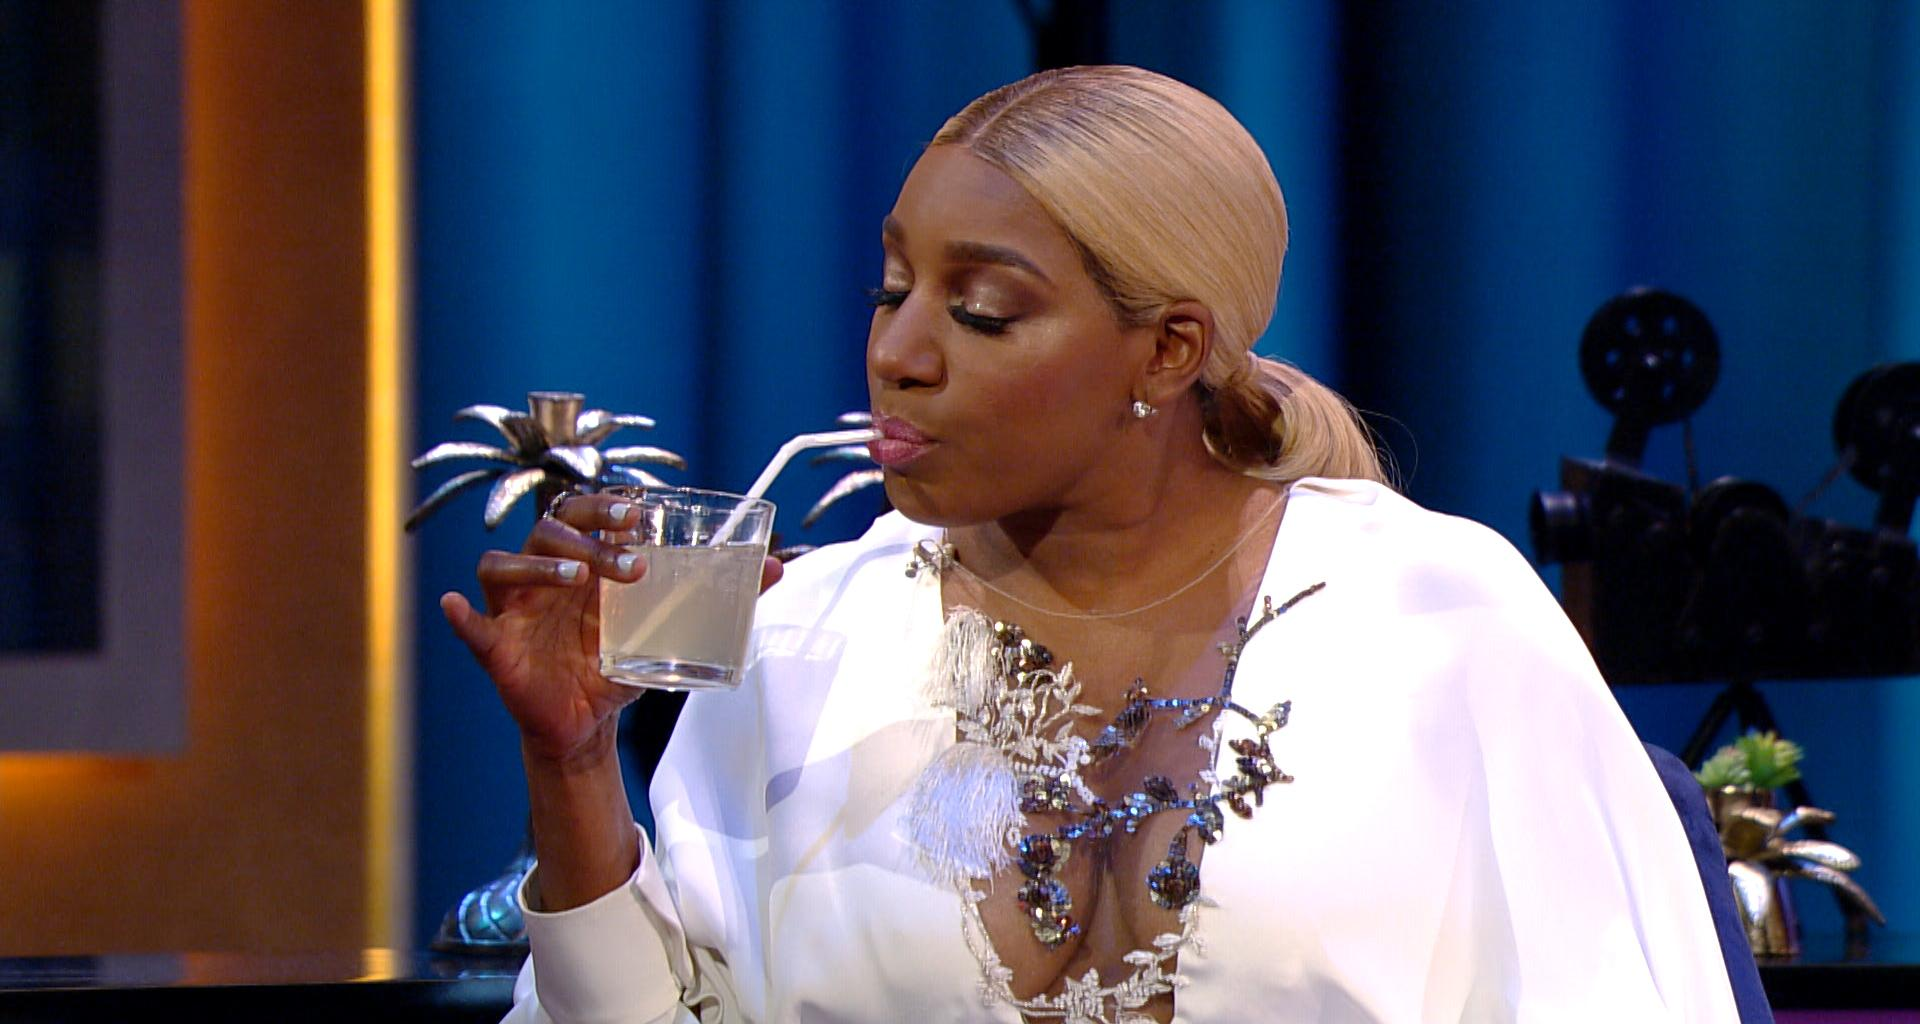 NeNe Leakes' Latest Photos Have Fans Telling Her To Stop Using Filters